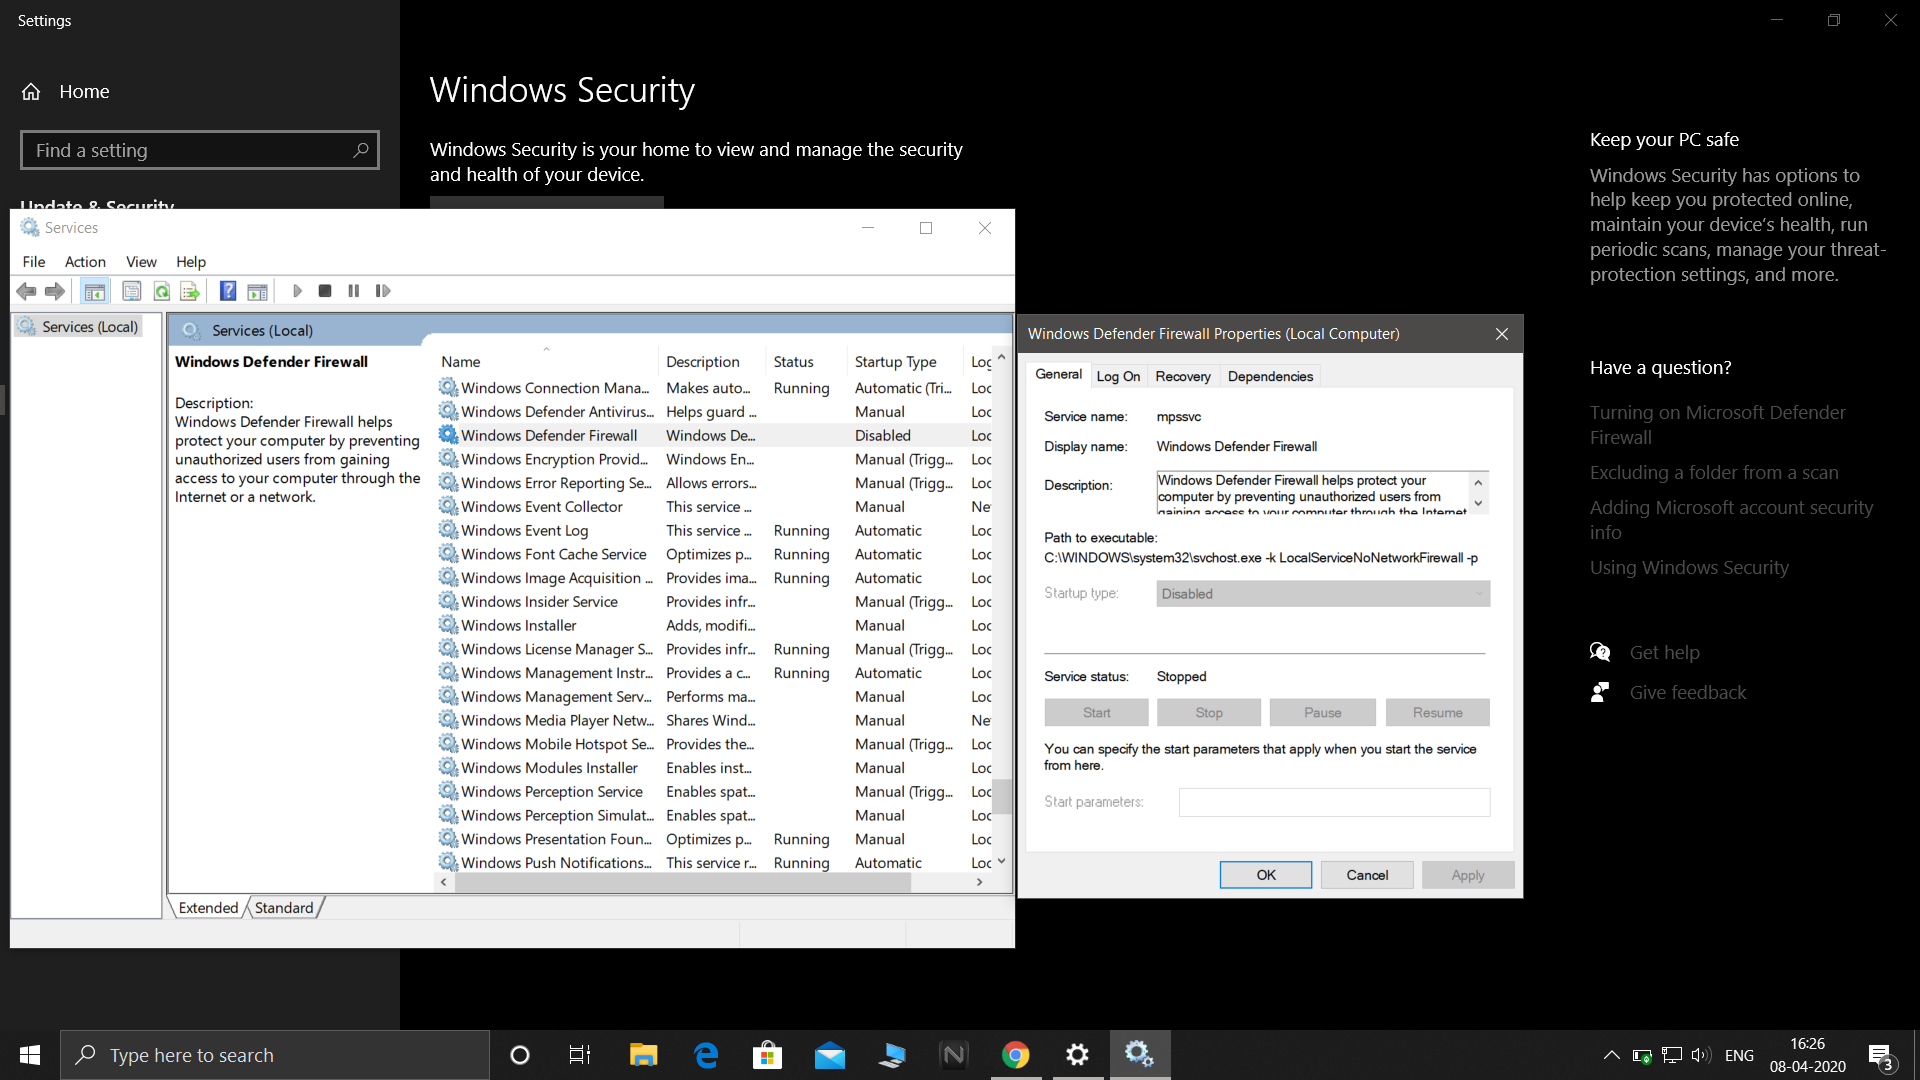 windows defender and firewall not starting 359c1755-3f69-4fcd-a1d2-899c651ae99a?upload=true.png